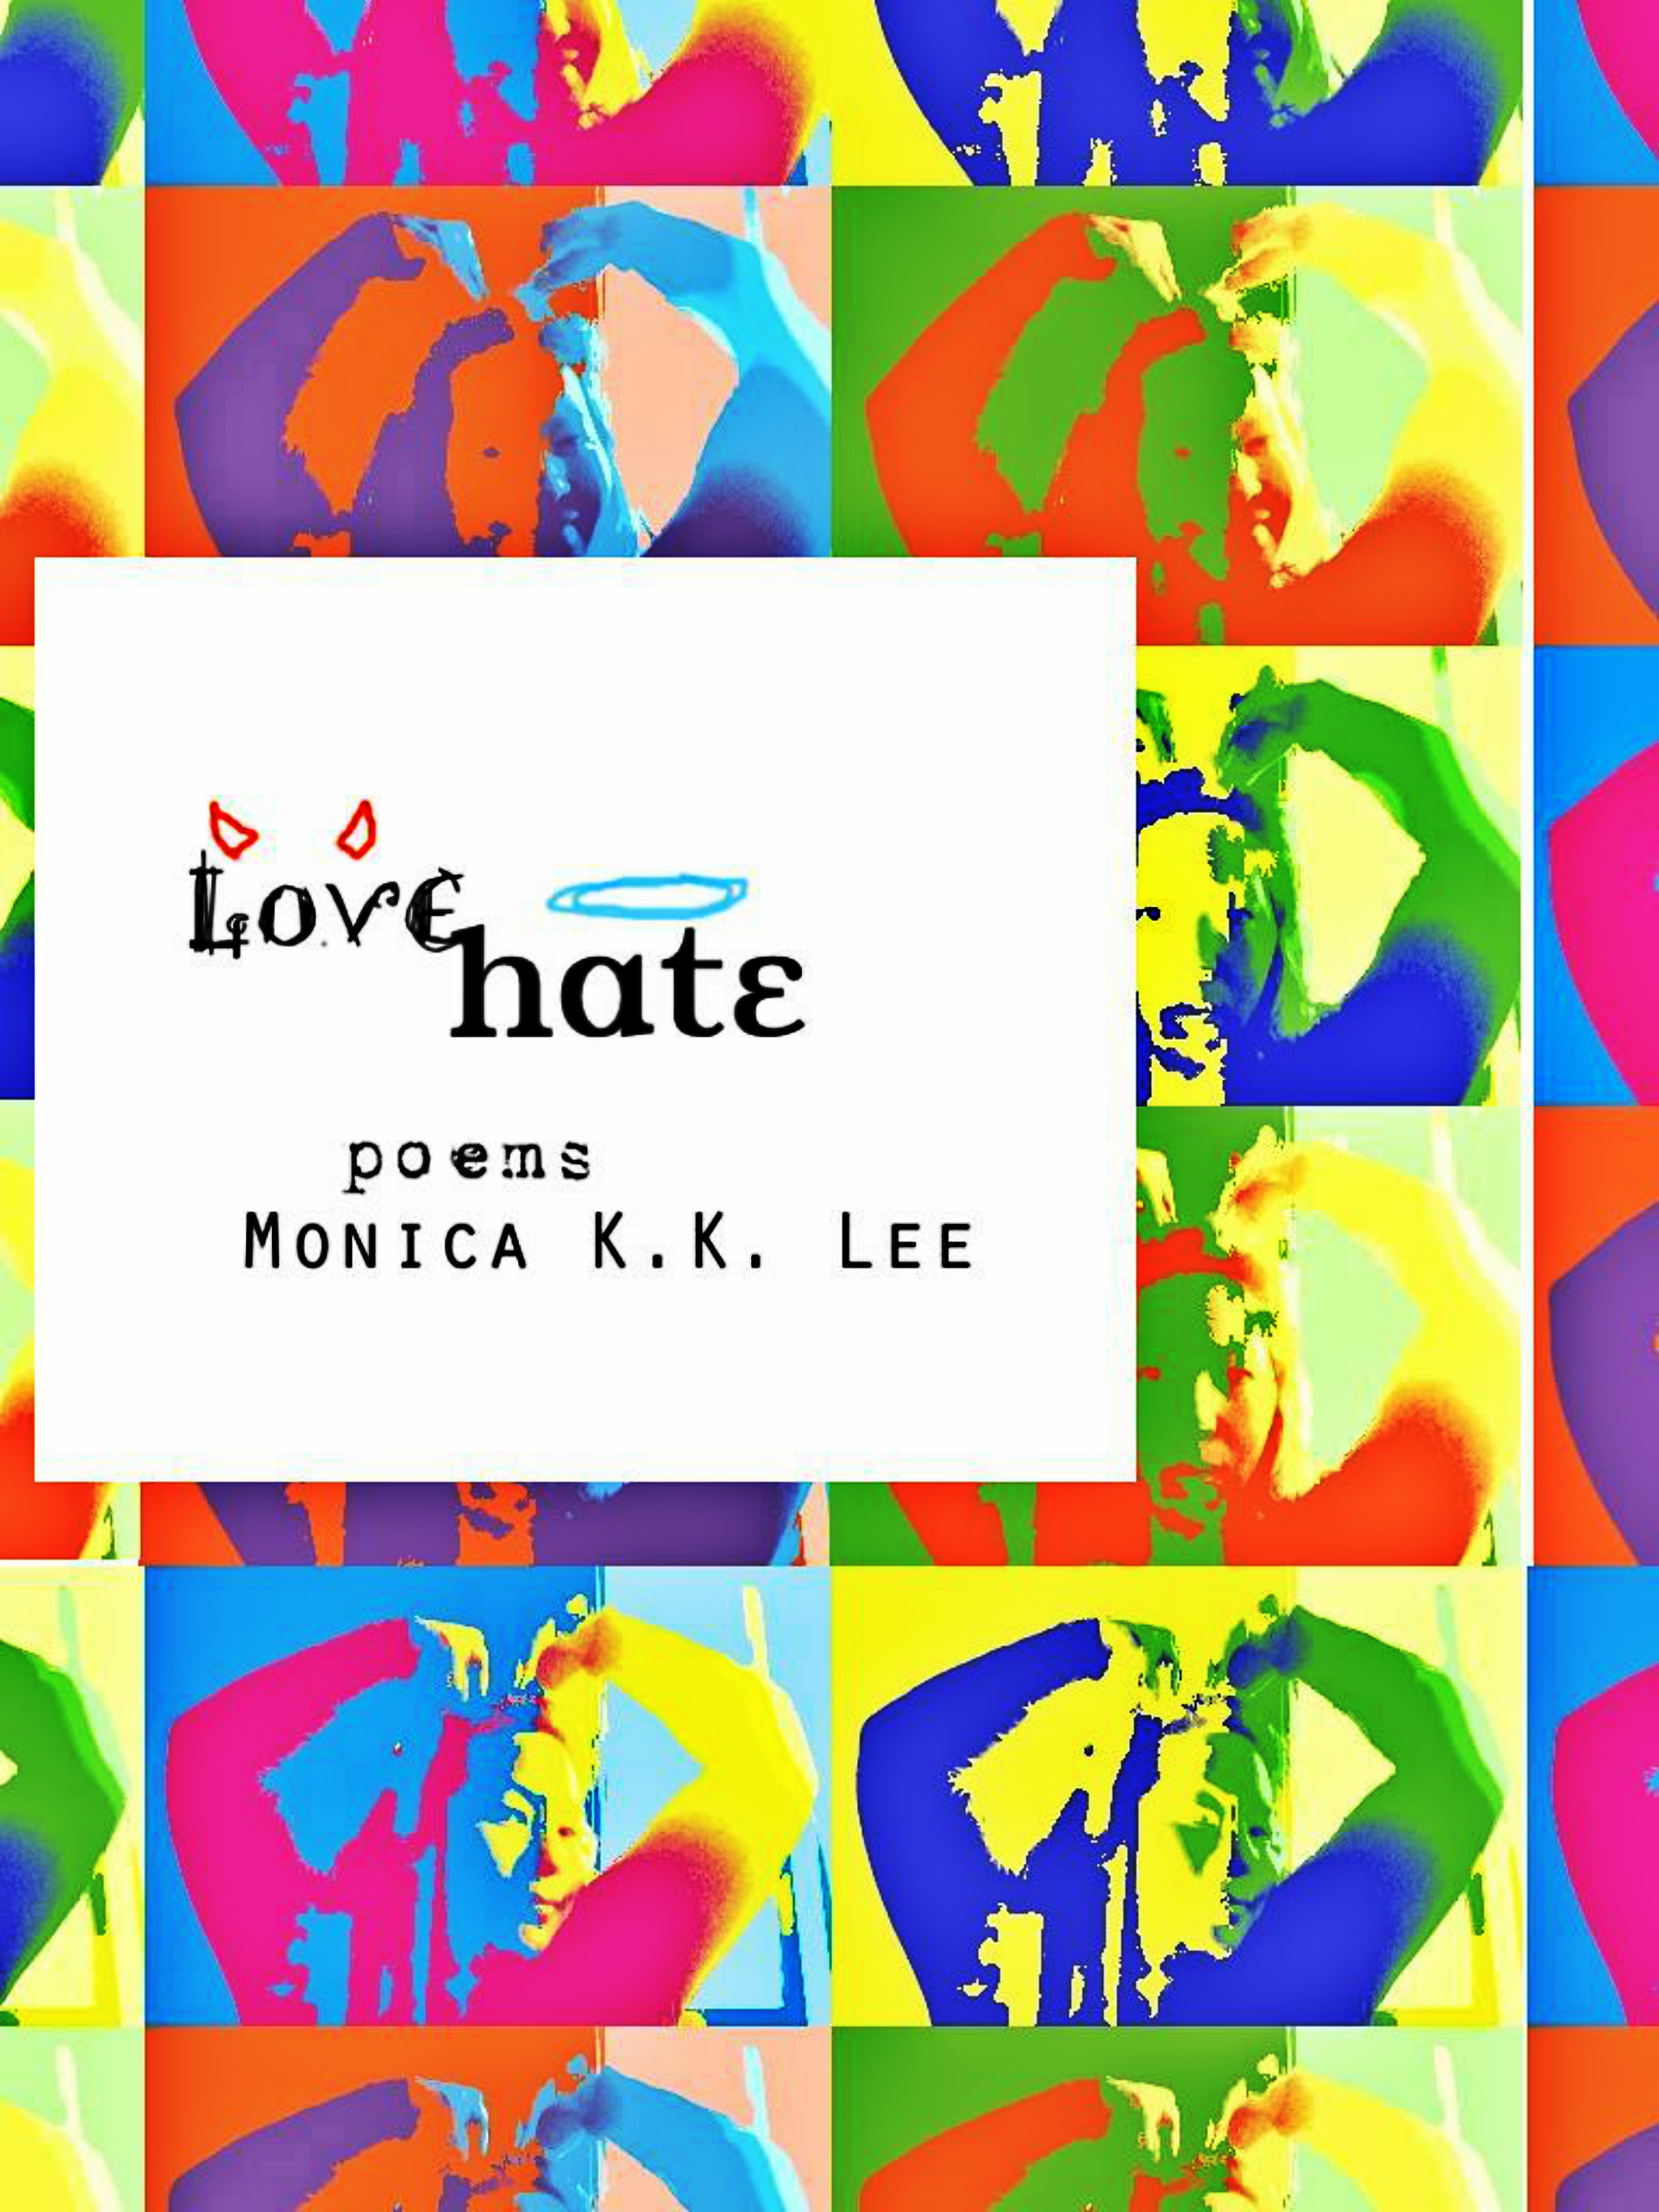 love hate motif 1984 themes buy study guide love/sexuality the party works to quell all physical sensations of love this theme comes to a head during winston's torture.